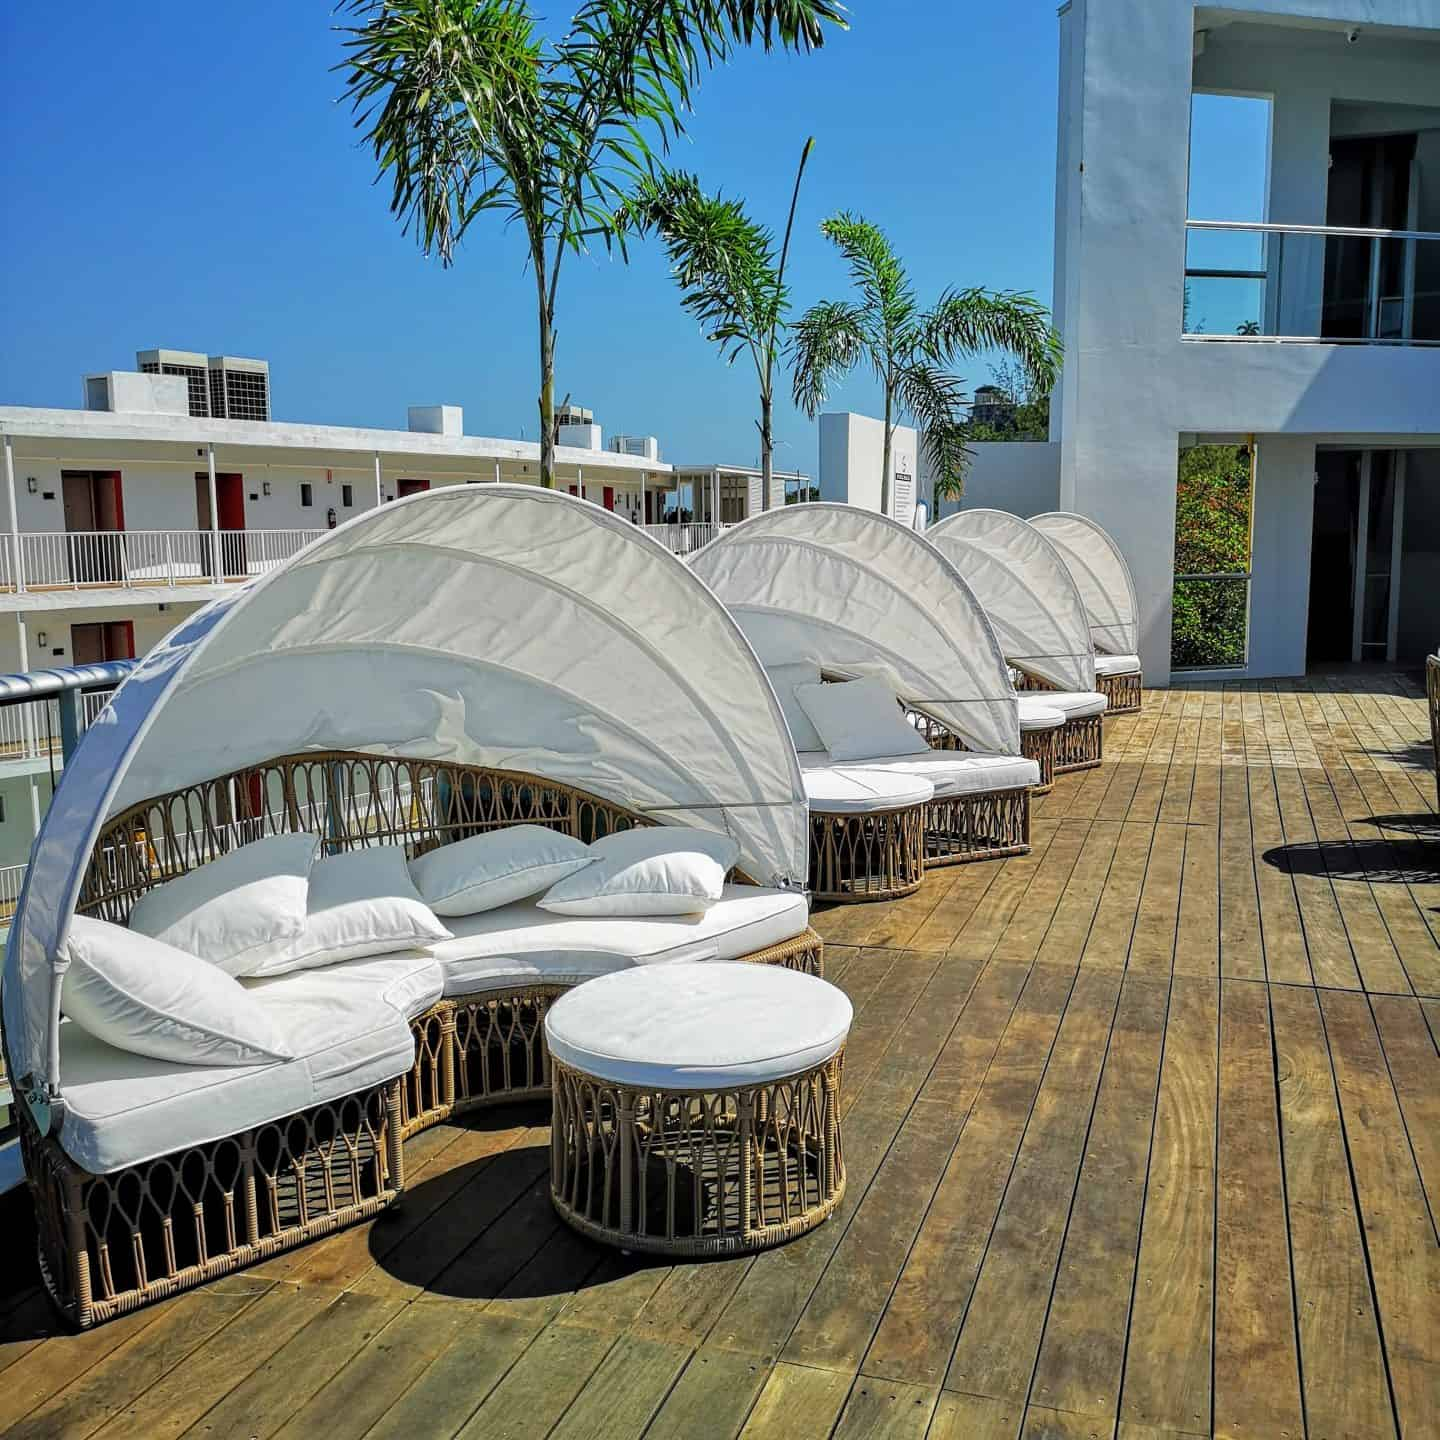 The S Hotel Jamaica Also Has An Enviable Gl Enclosed Pool Surrounded By Cabanas And Loungers Where You Will Have Best Beach Views